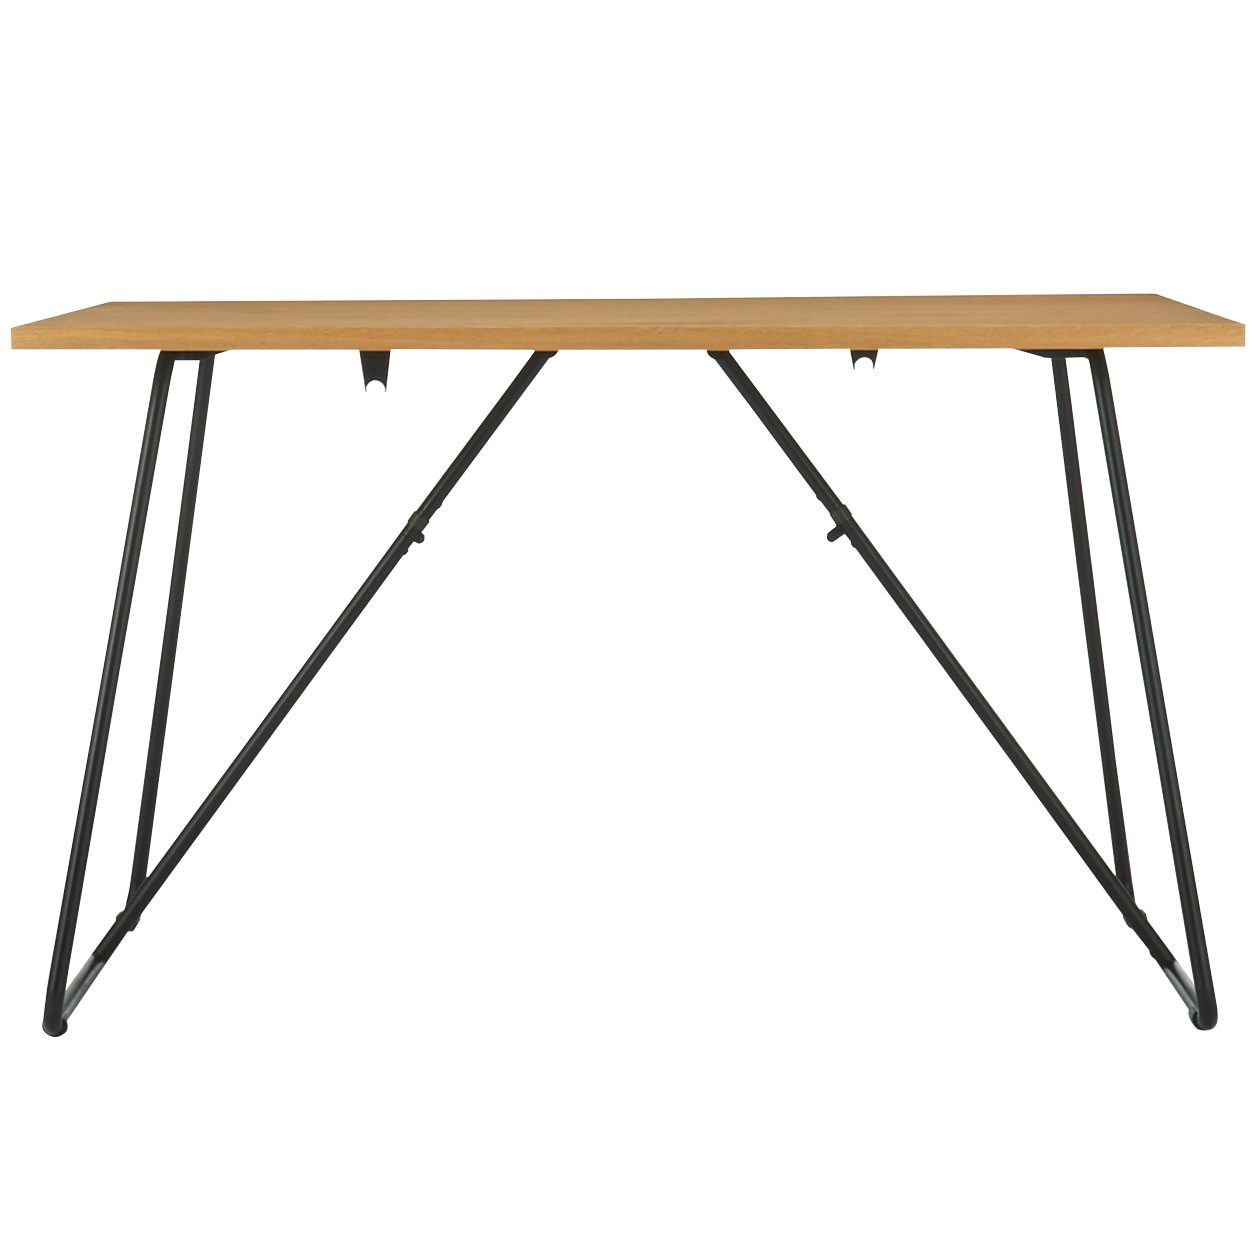 Oak Bench Large W100xd30xh44cm Foldable Table Folding Dinning Table Table